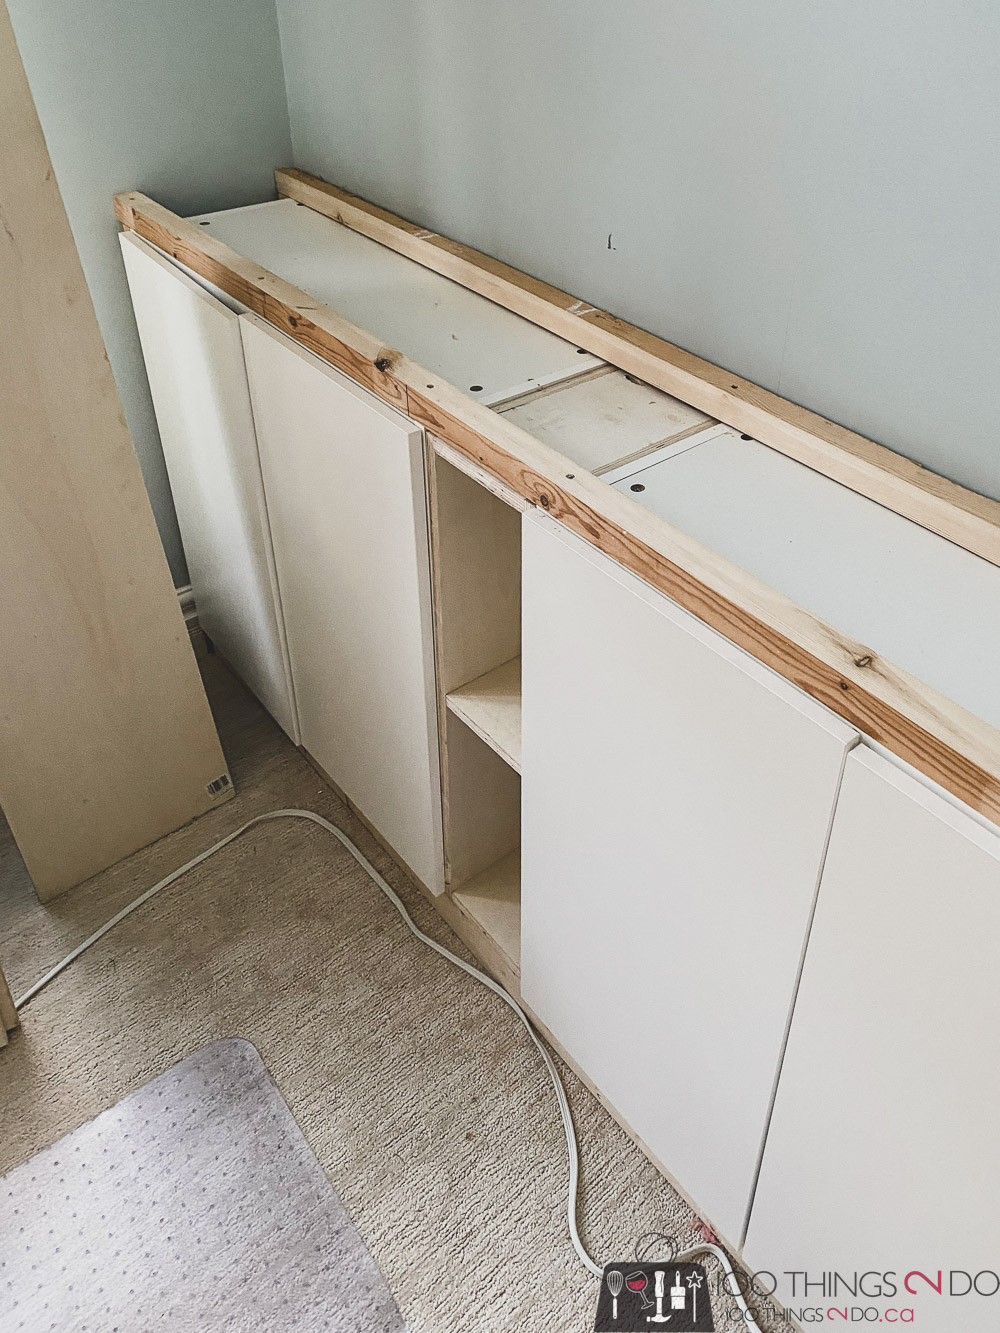 connecting the base cabinets